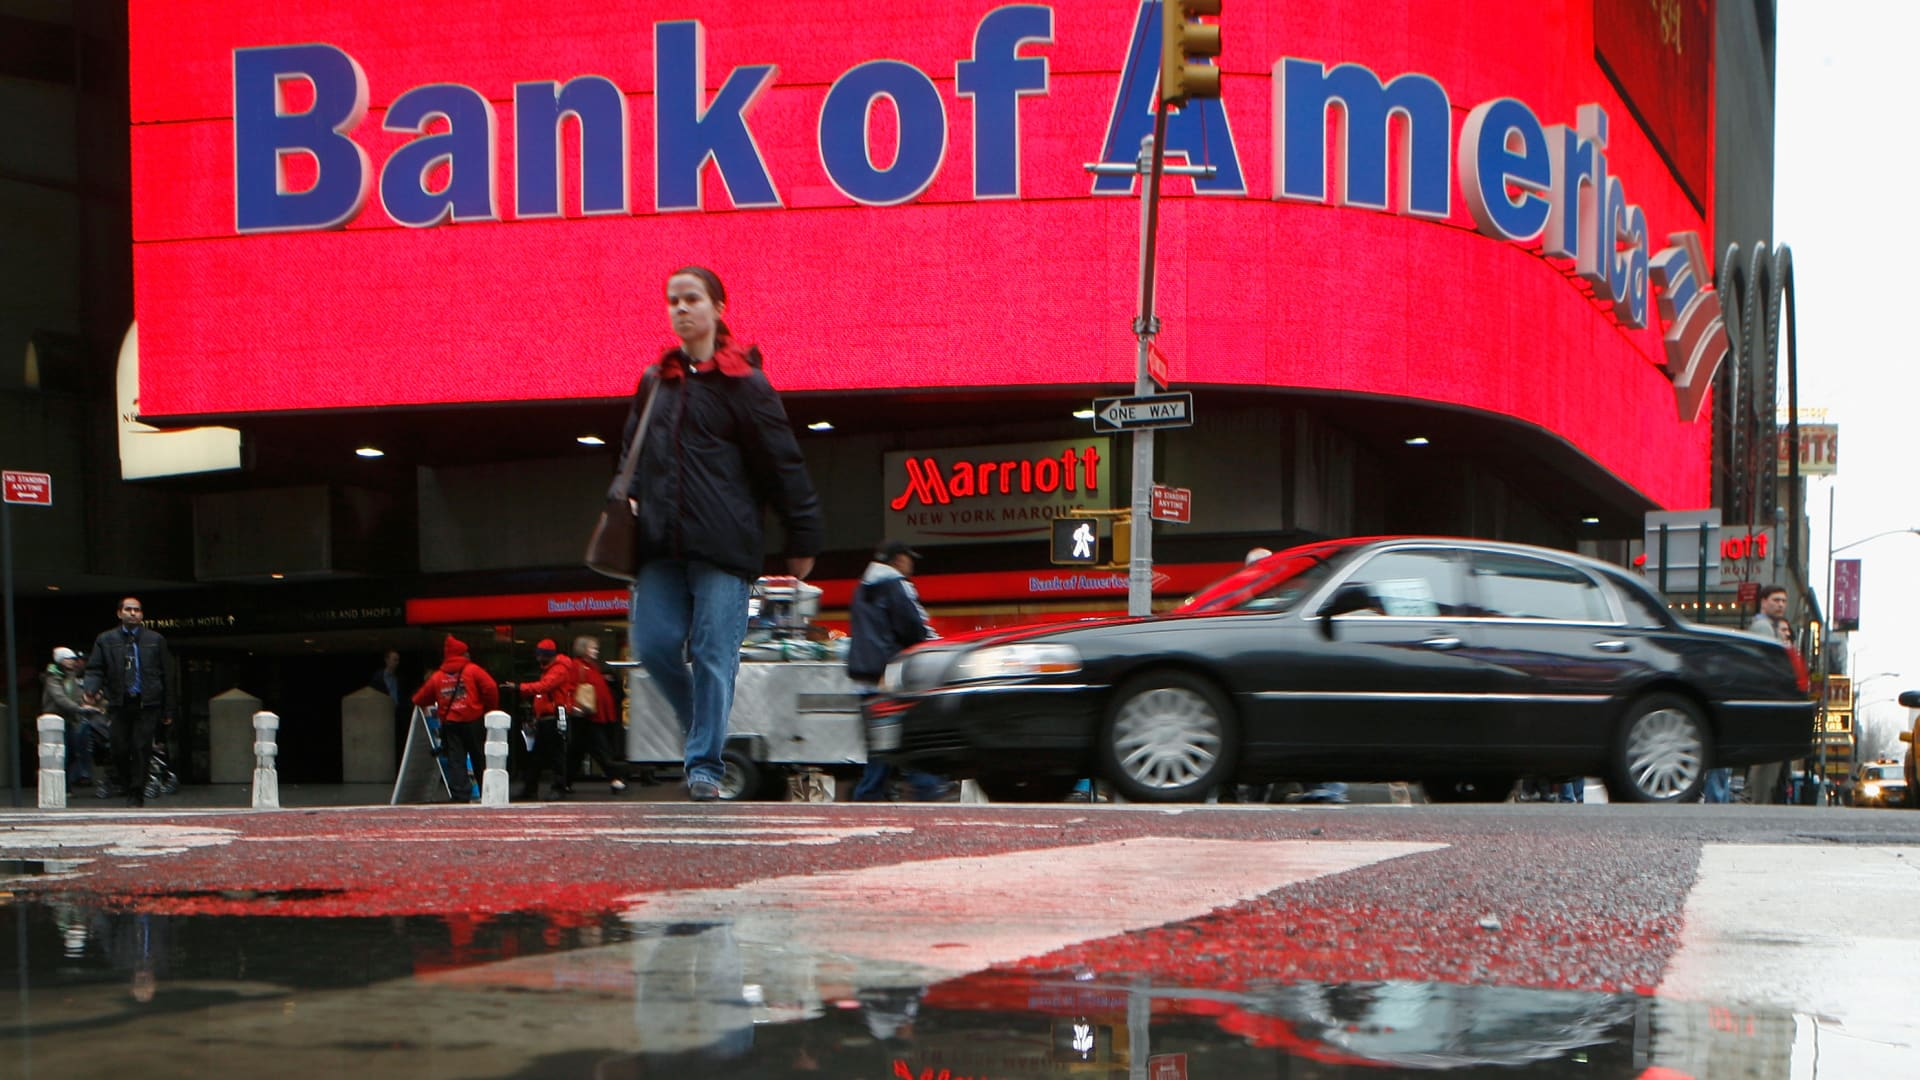 A woman is reflected in a puddle as she passes a Bank of America branch in New York's Times Square.